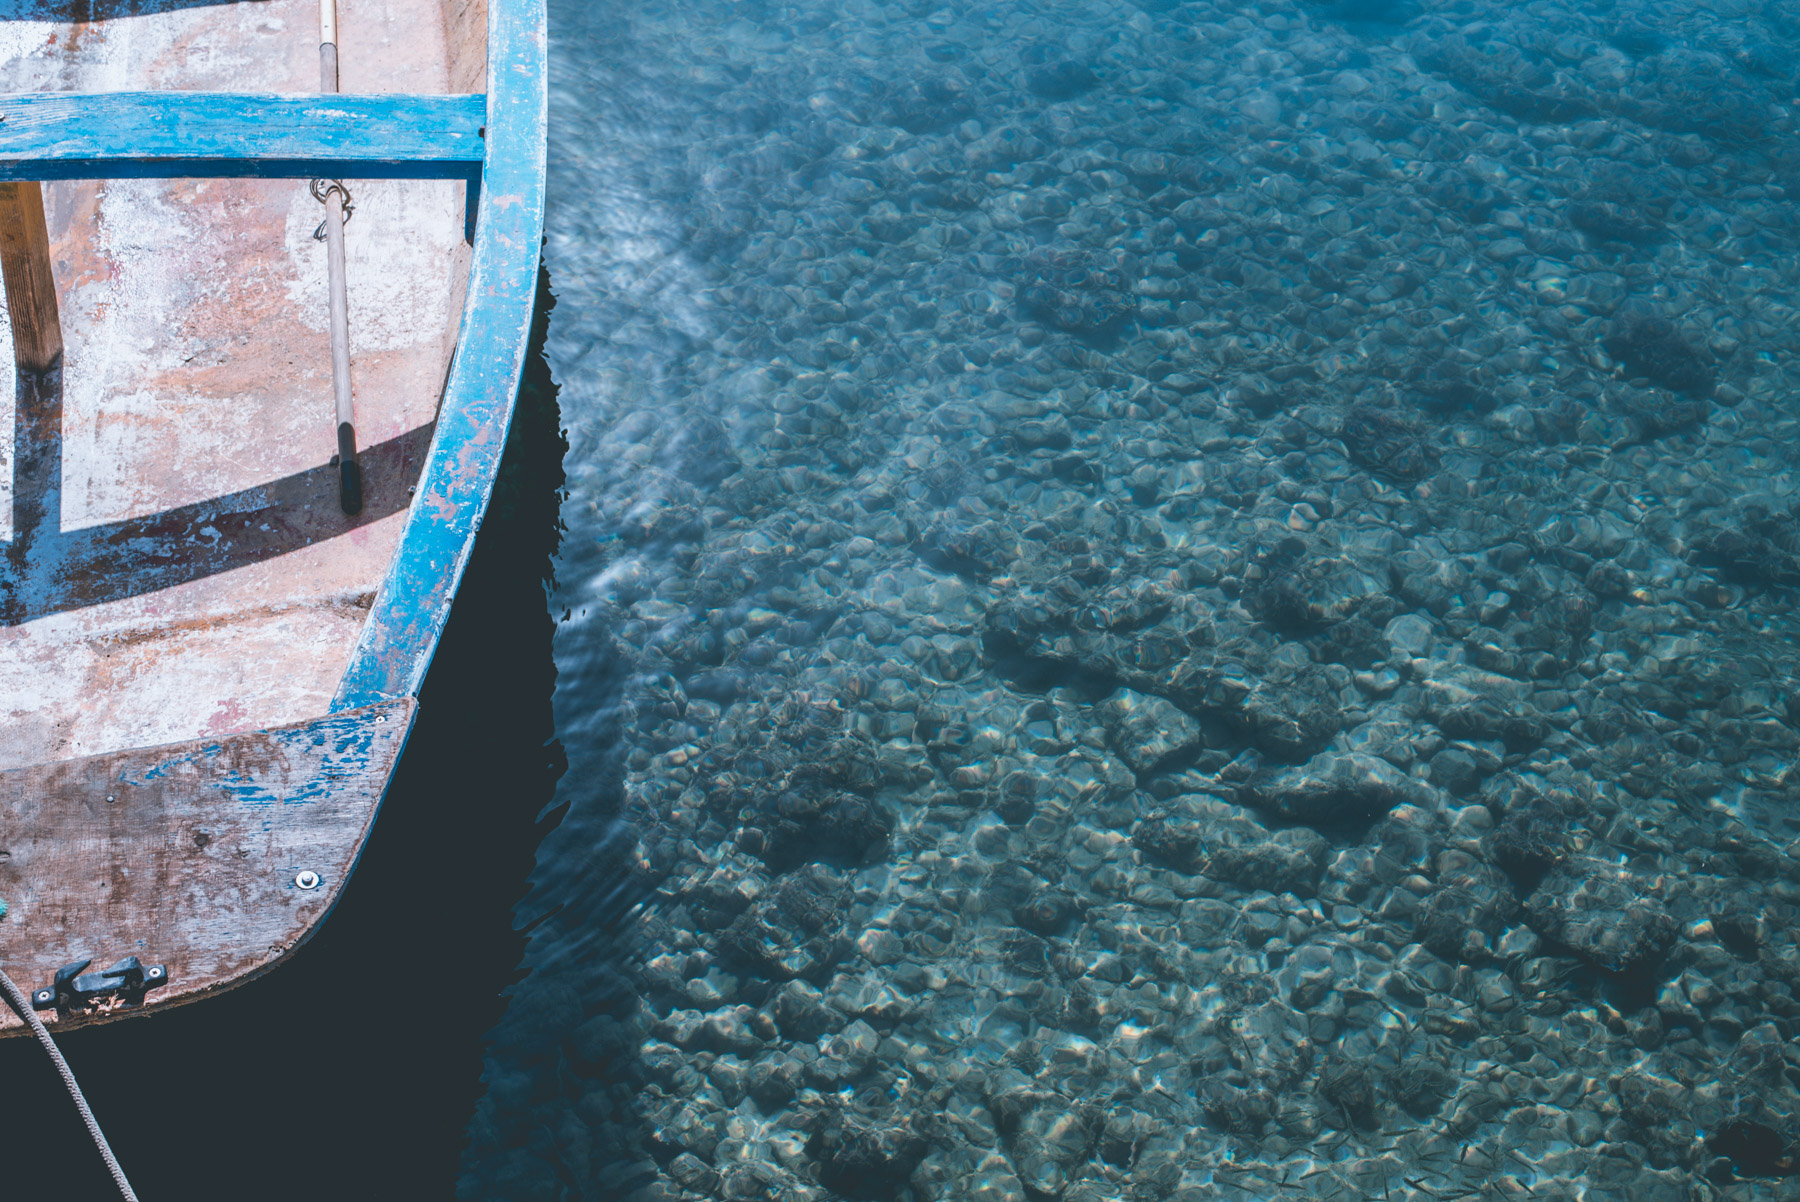 Detail of the blue sea of the island of lampedusa and a small section of a wooden boat